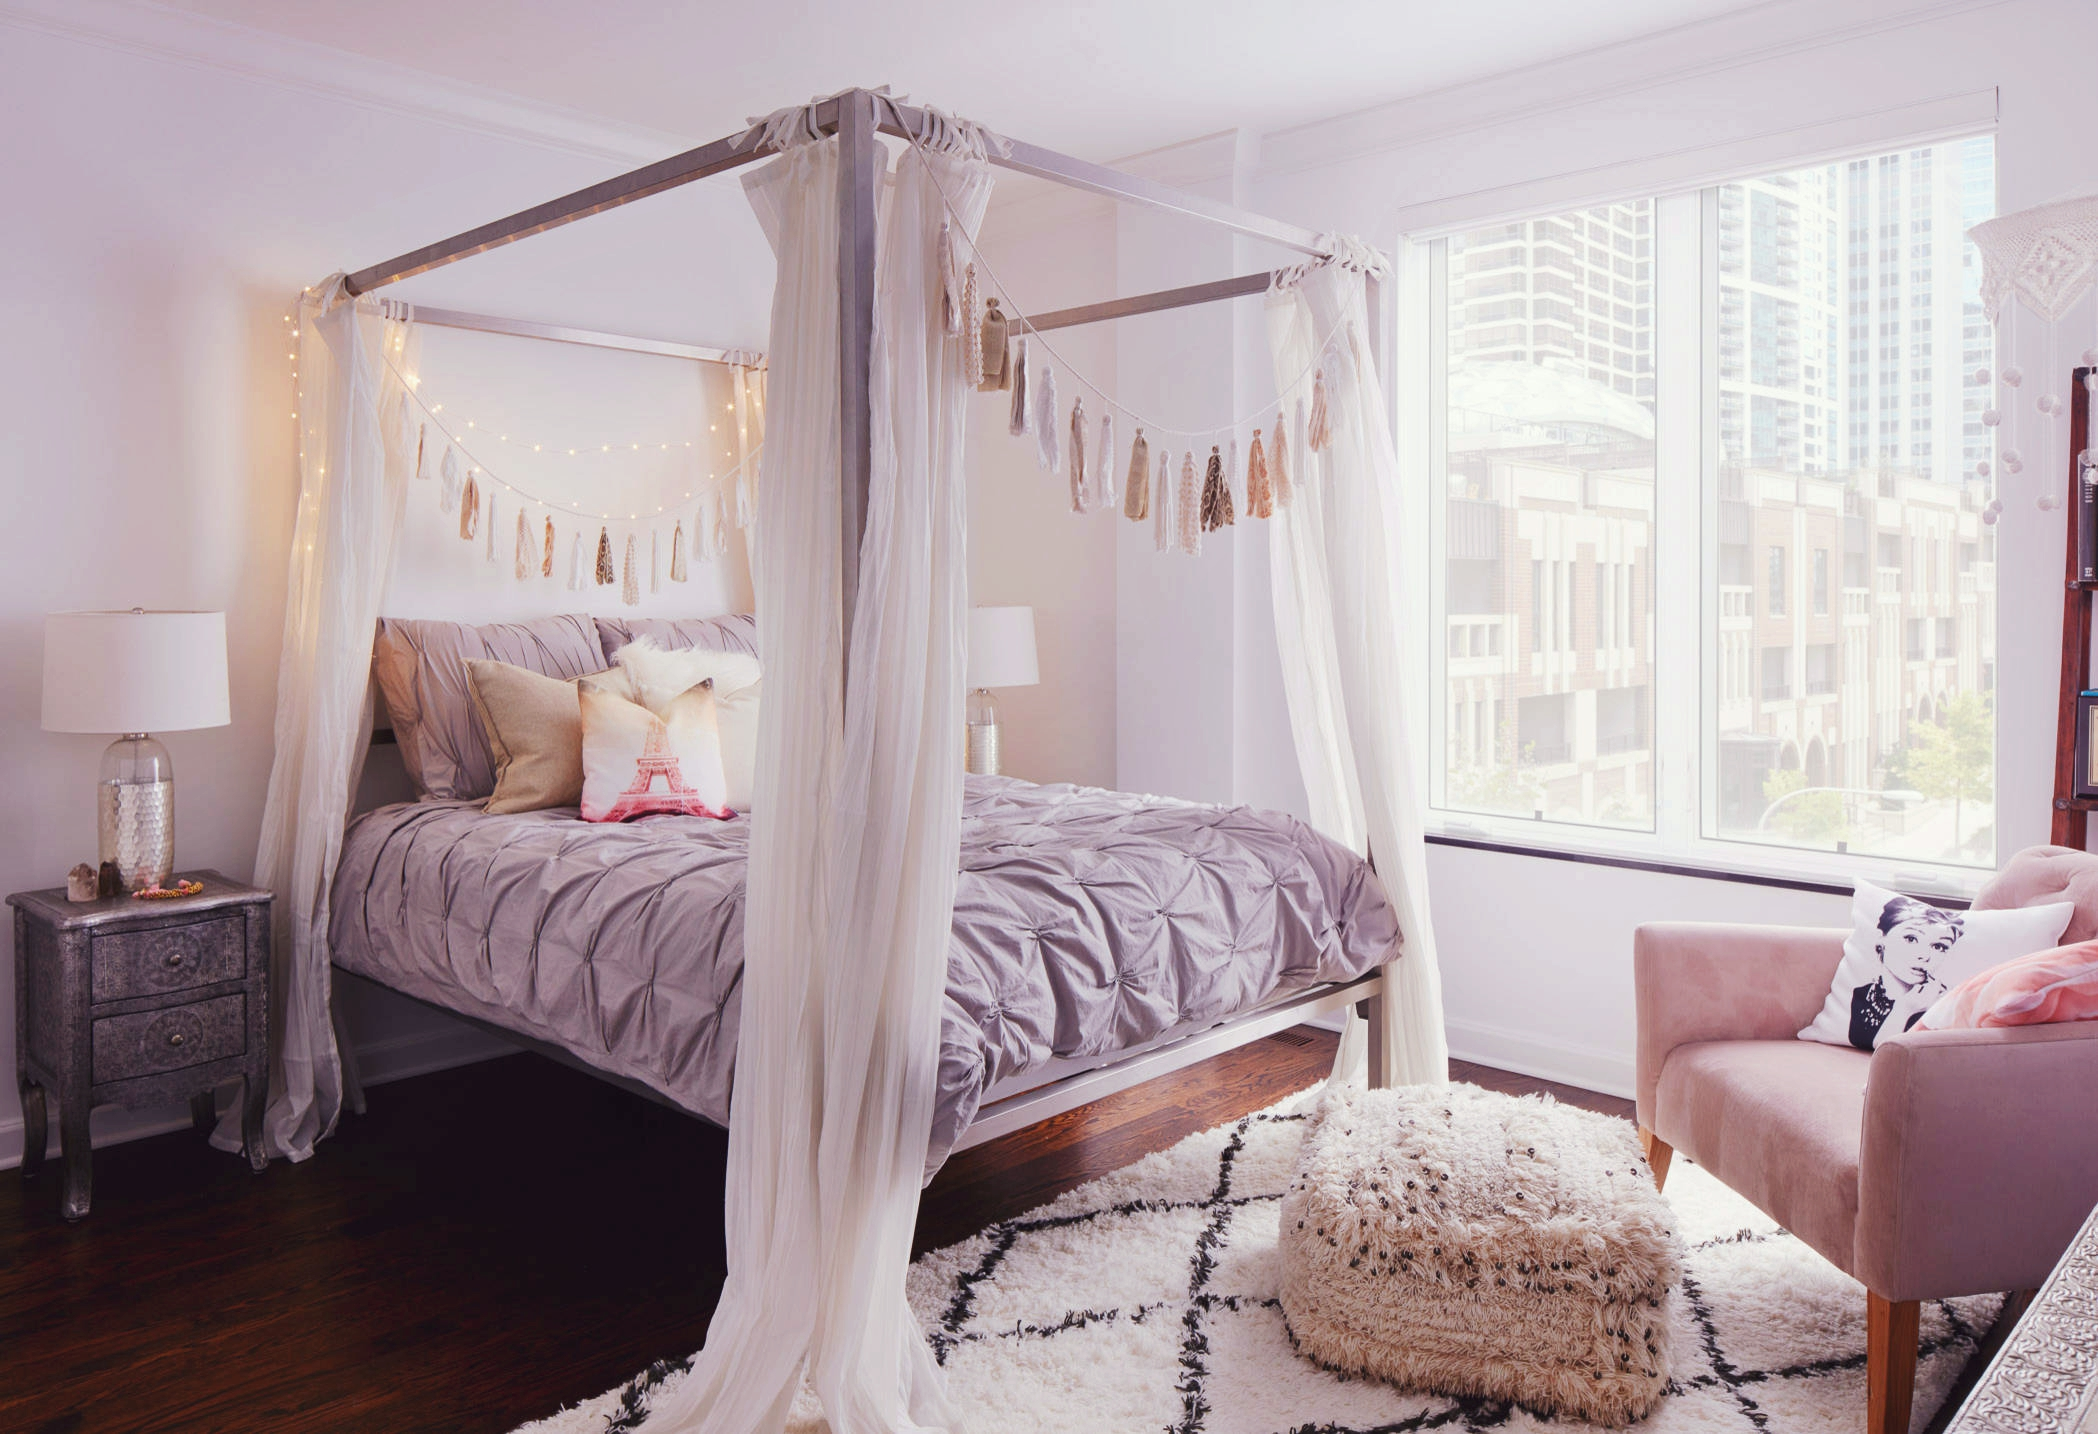 Lilac Gray Serenity Grey Rose Quartz Pantone 2016 Color Trend Pastel Pink Rose Lavender Bohemian Bedroom 4 Post Bed Curtains Feather Decor Bohemian Condo Girly Feminine Bedroom Shop Room Ideas Shop Room Ideas